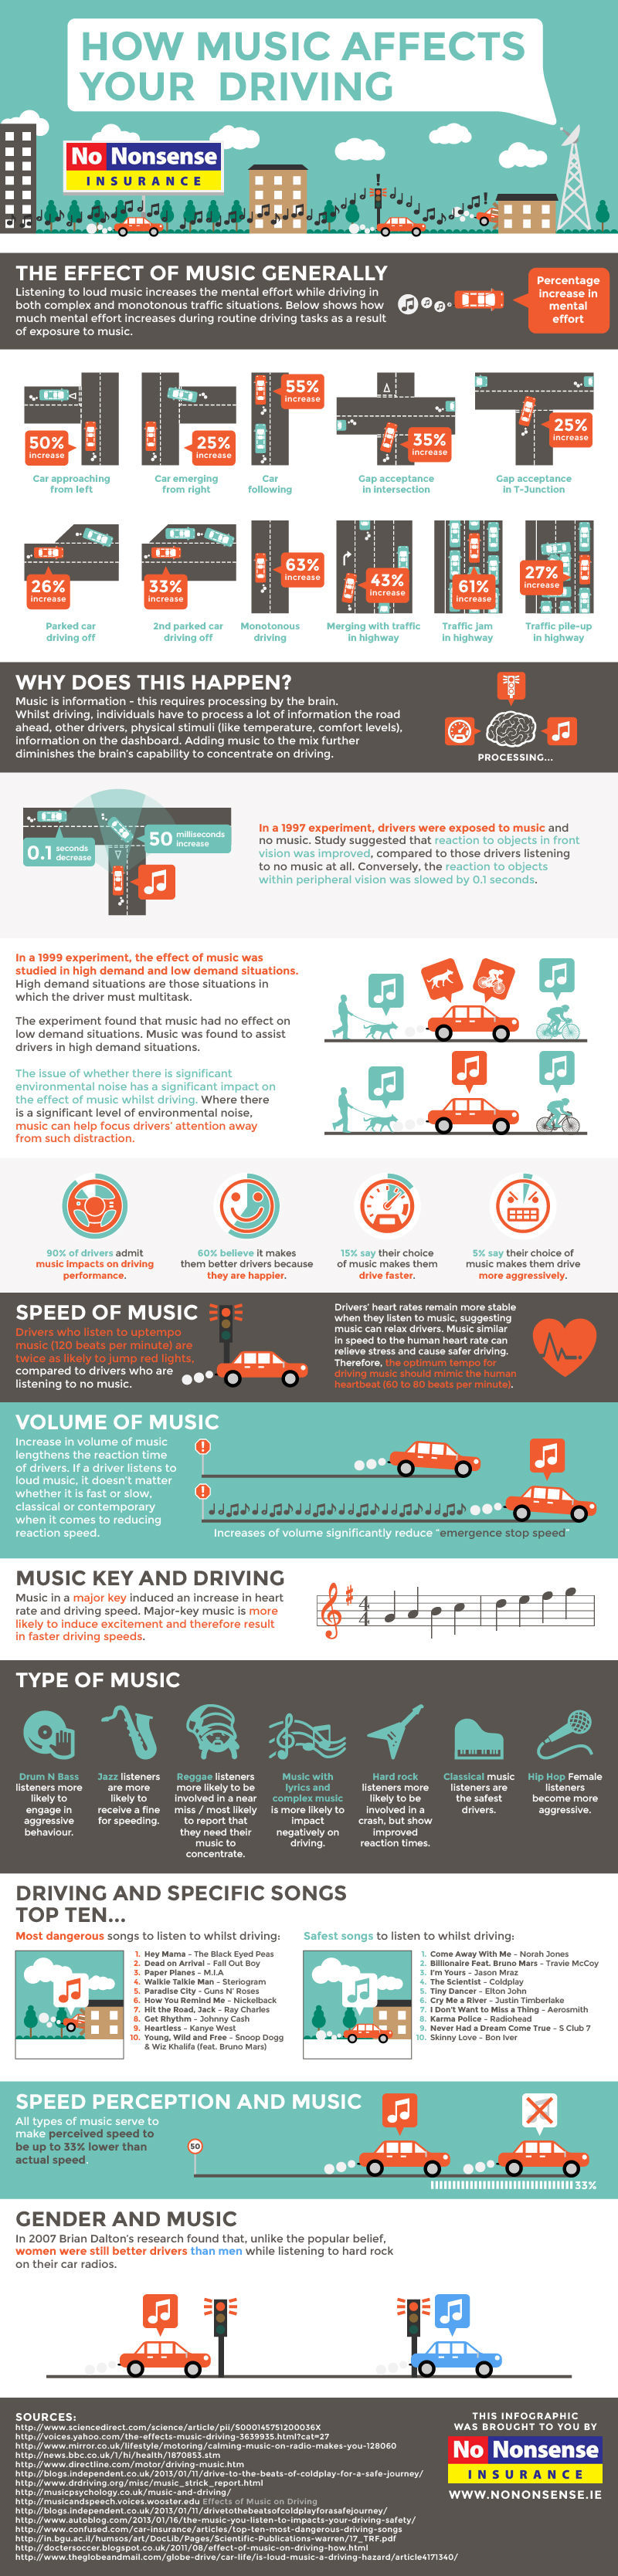 how-music-affects-your-driving